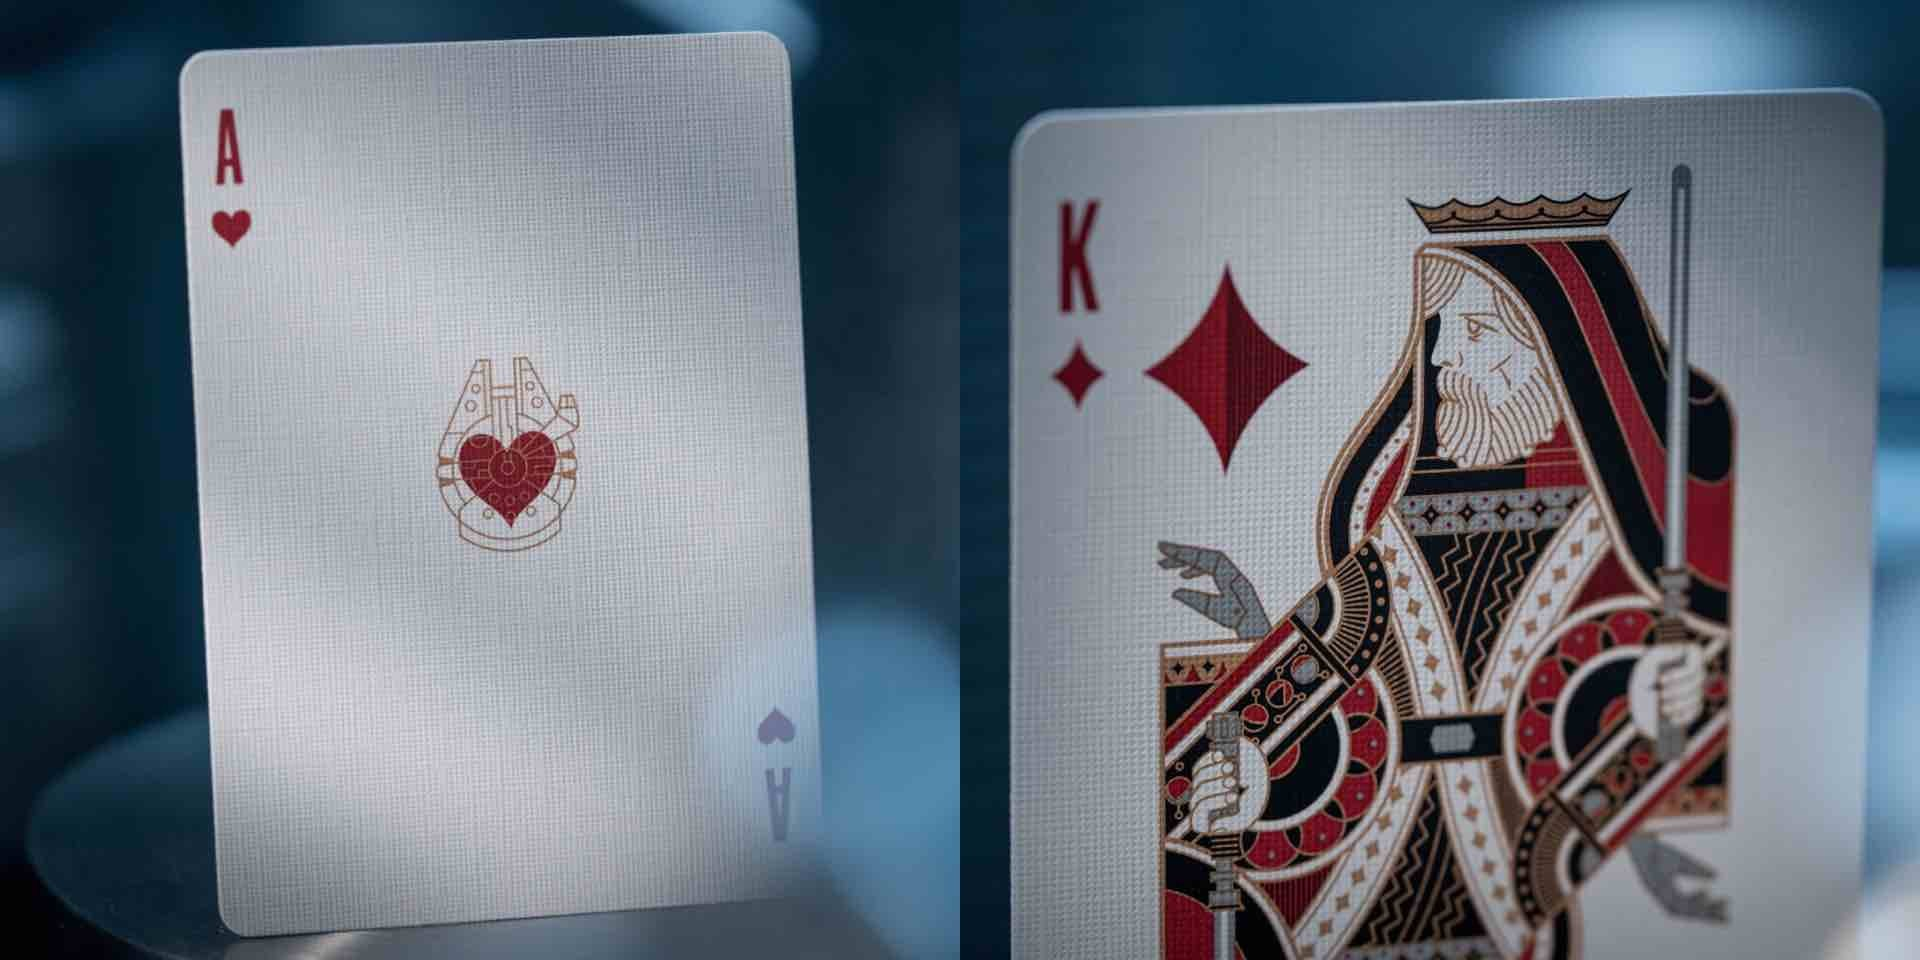 theory11-star-wars-playing-cards-light-side-2